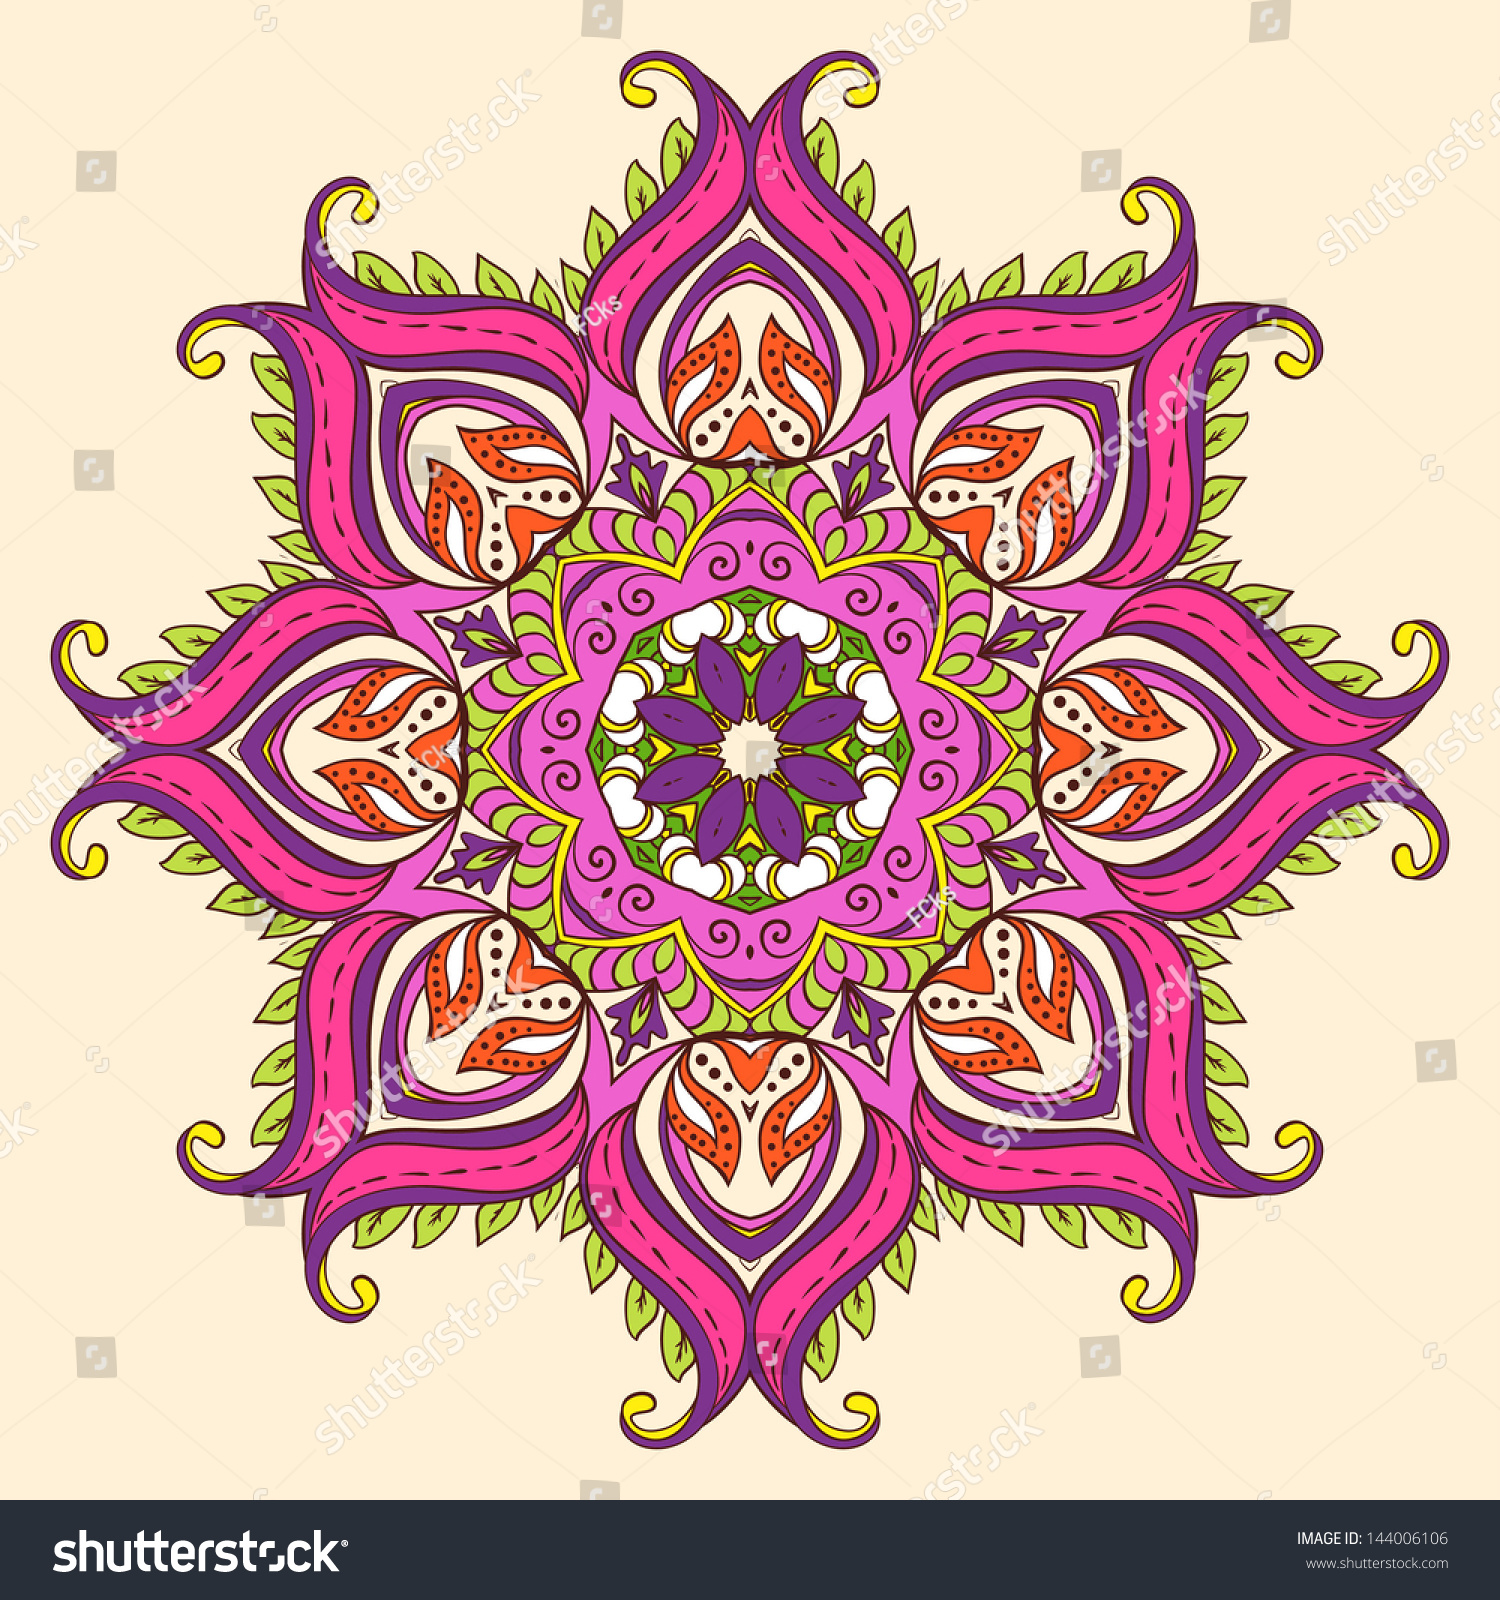 Vector Indian Decorative Lotus Fullblown Flower Stock Vector